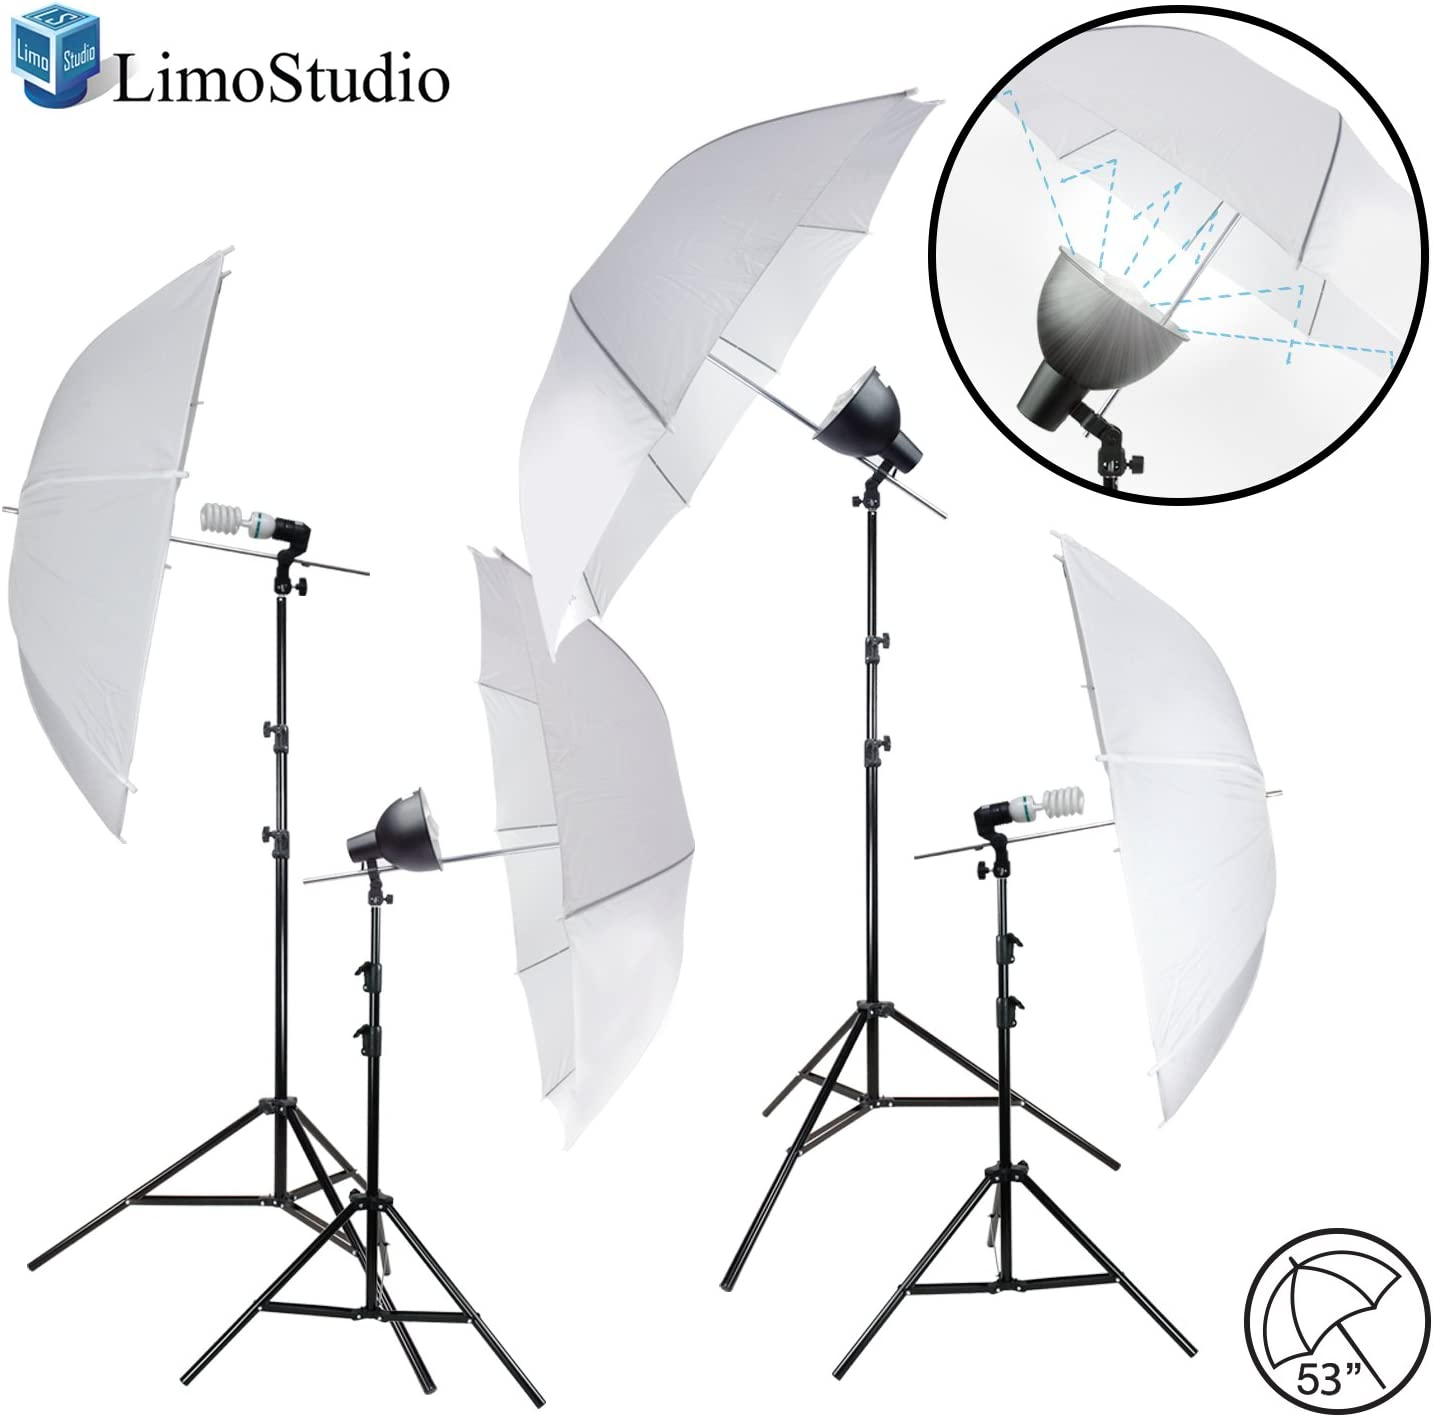 LimoStudio White Umbrella Reflector Complete Kit Lighting with Cheap mail order shopping T Japan's largest assortment